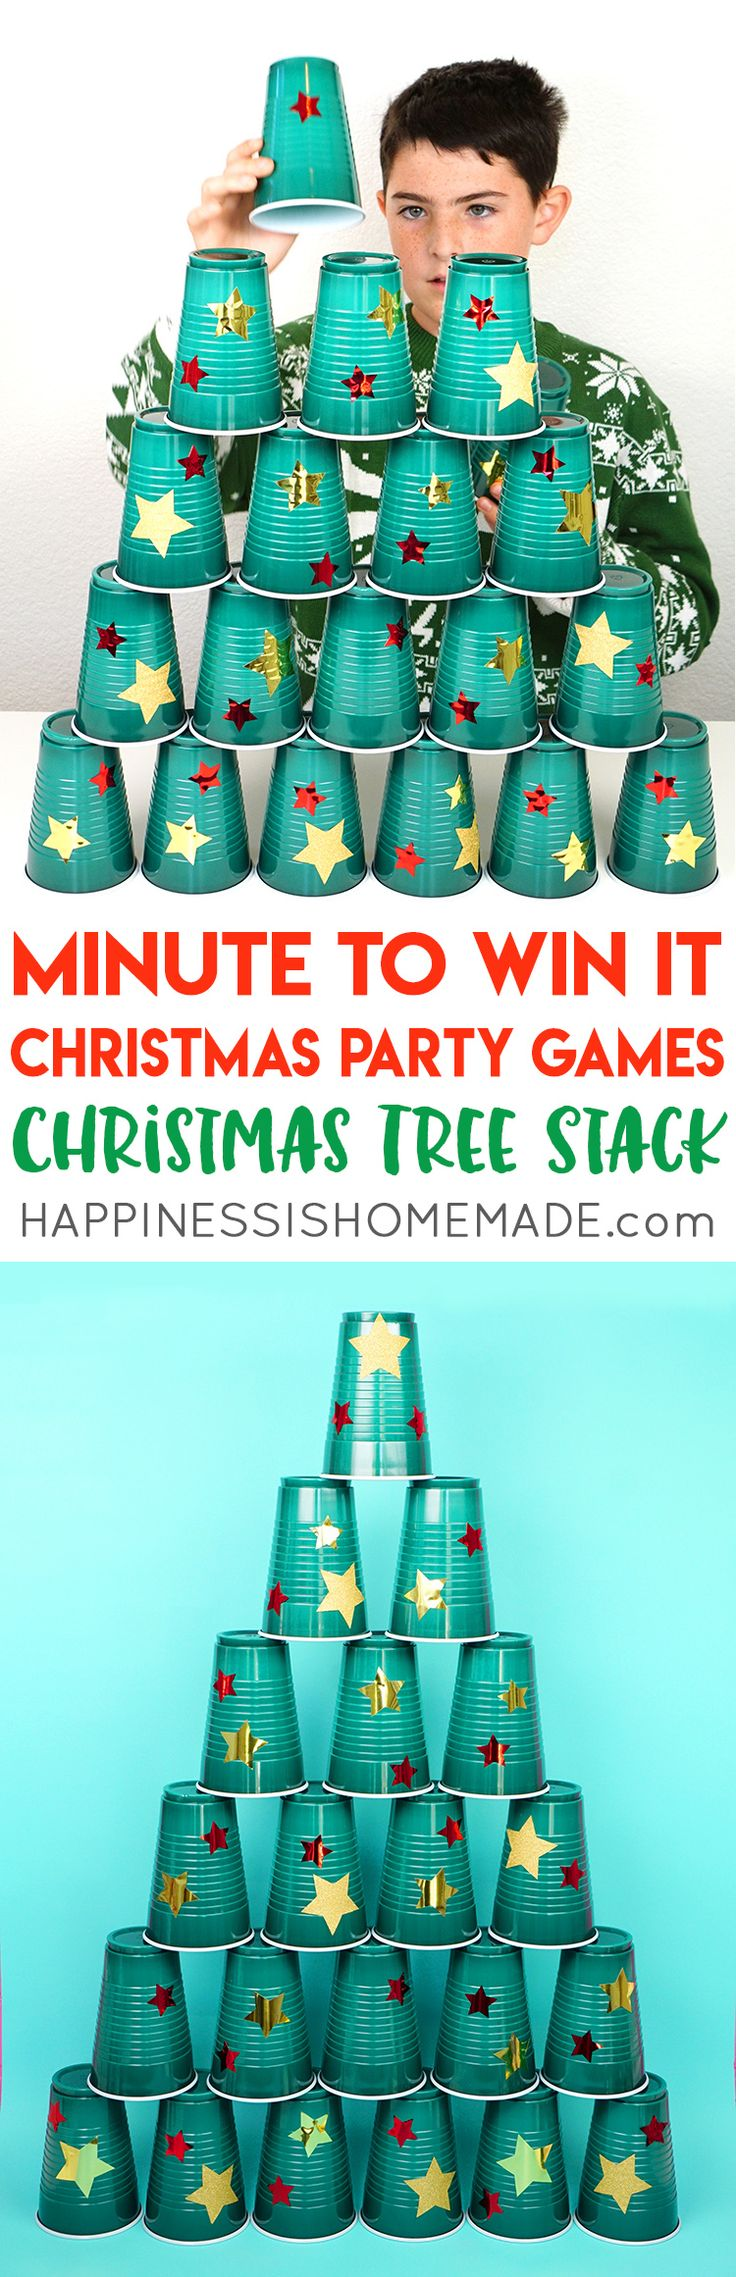 Christmas Minute to Win It Games - Host the best Christmas party ever with these fun Christmas Minute to Win It games for kids and adults – everyone from toddlers to grandmas will want to play! These Christmas party games are perfect for all ages – challenging enough for older kids and adults, but still simple enough that younger children can join in the fun!